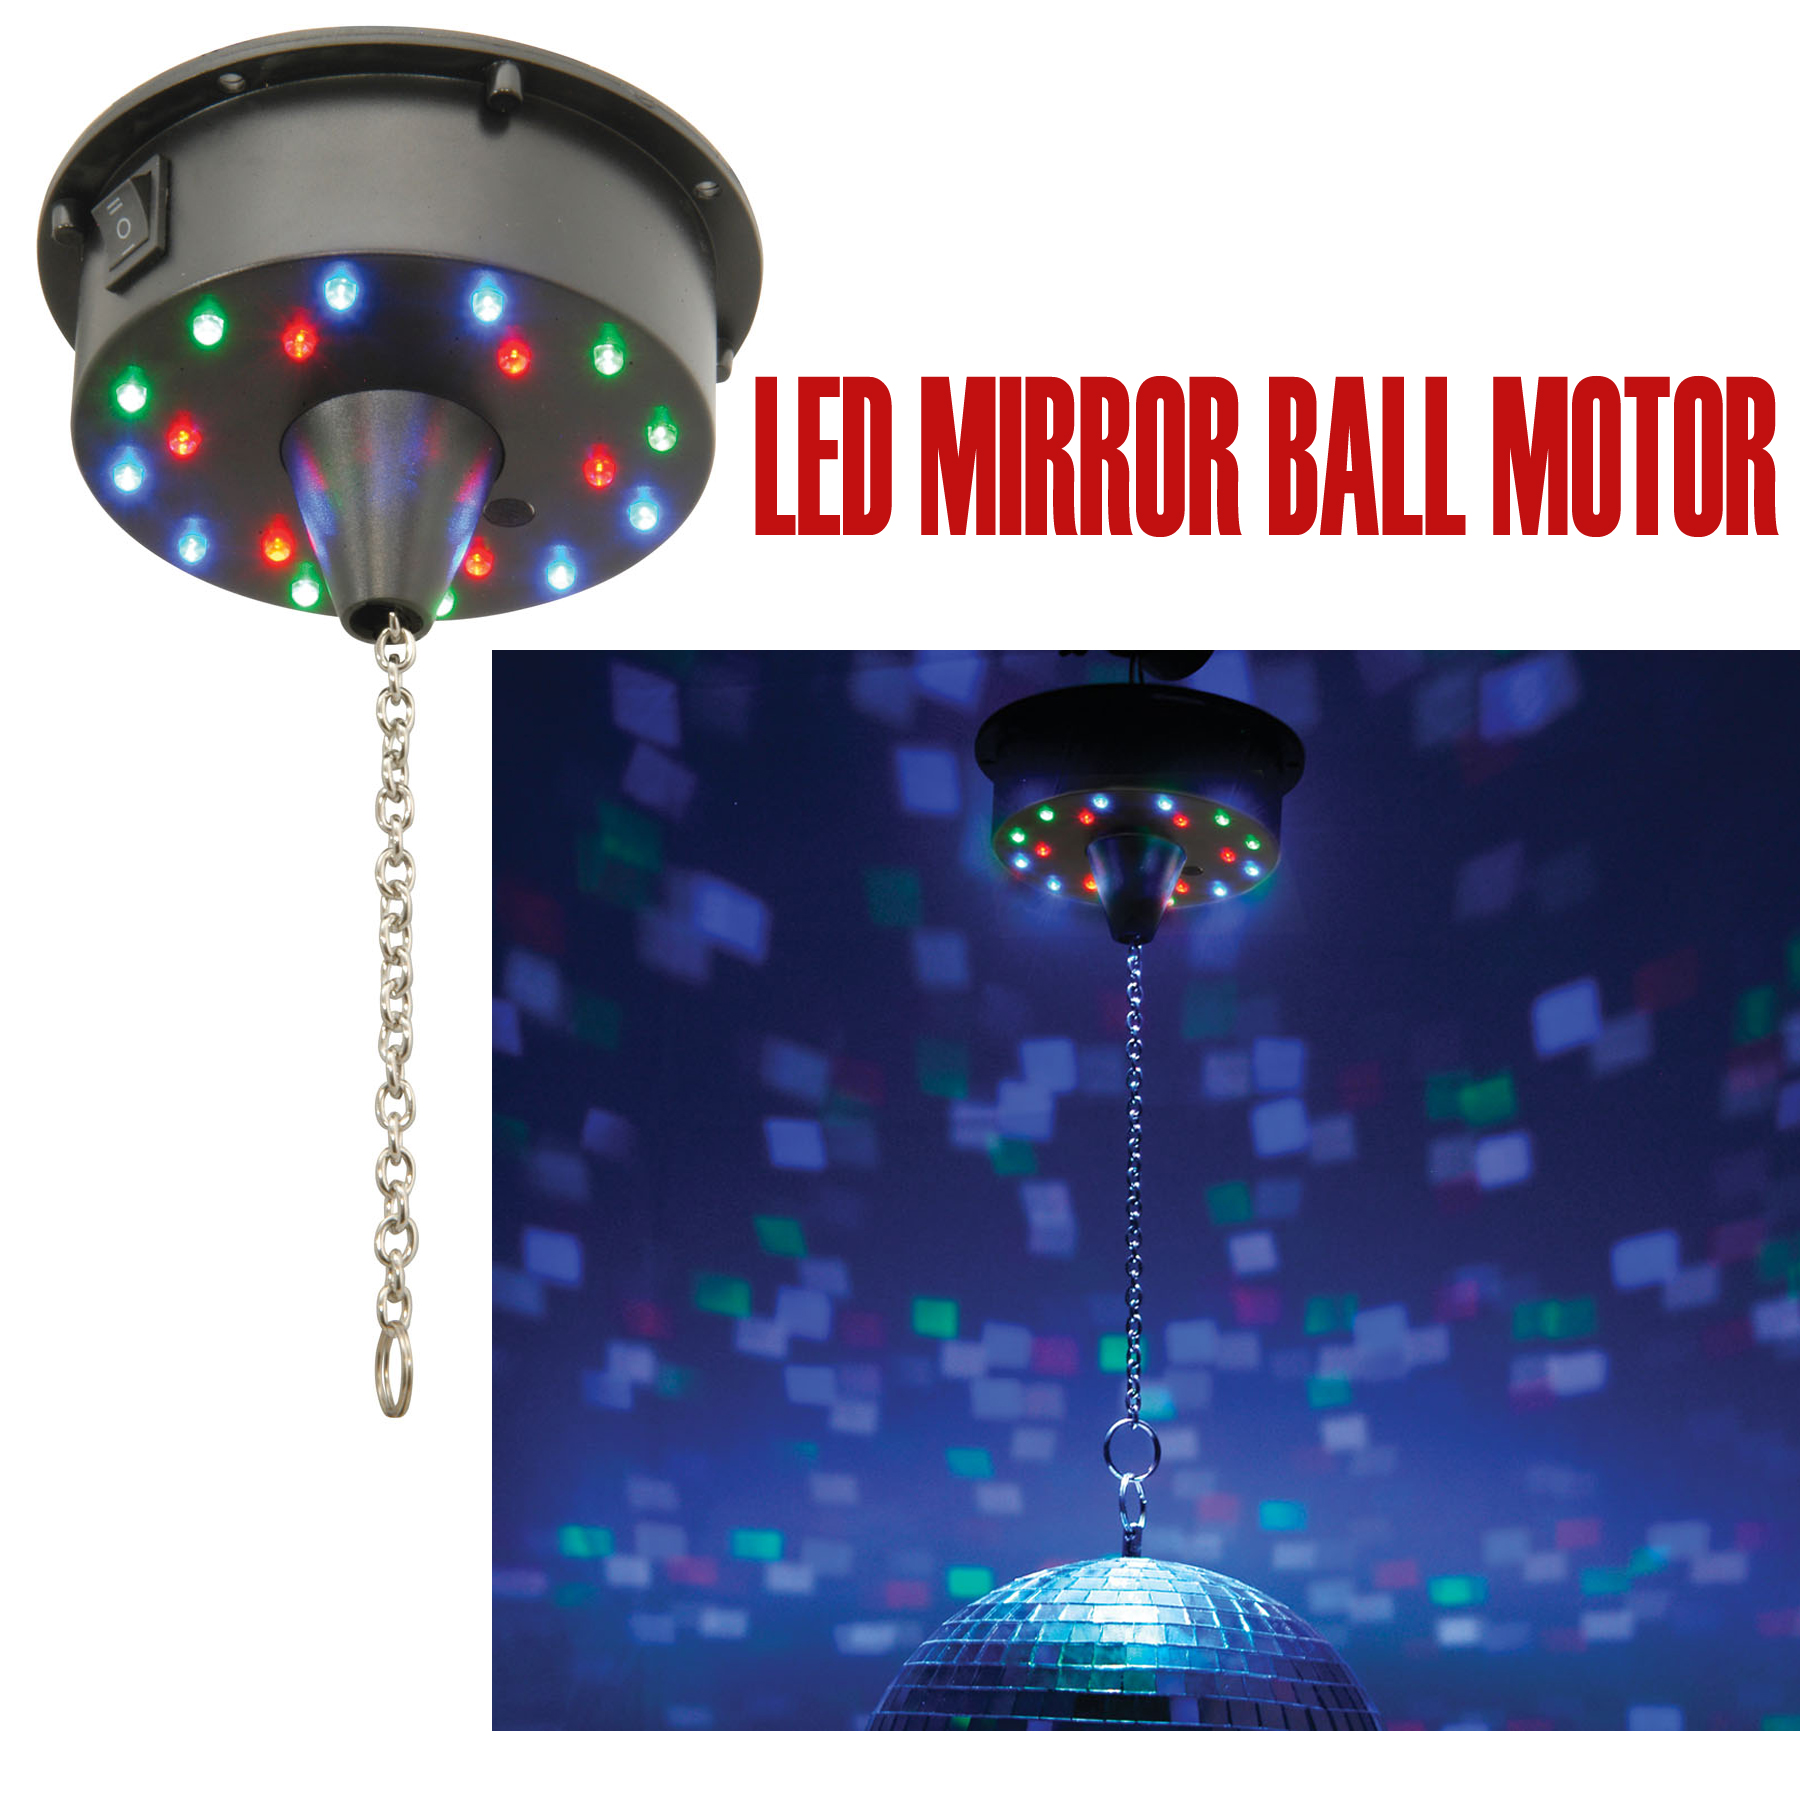 qtx battery operated 18 focused led mirror ball motor 6rpm ebay. Black Bedroom Furniture Sets. Home Design Ideas